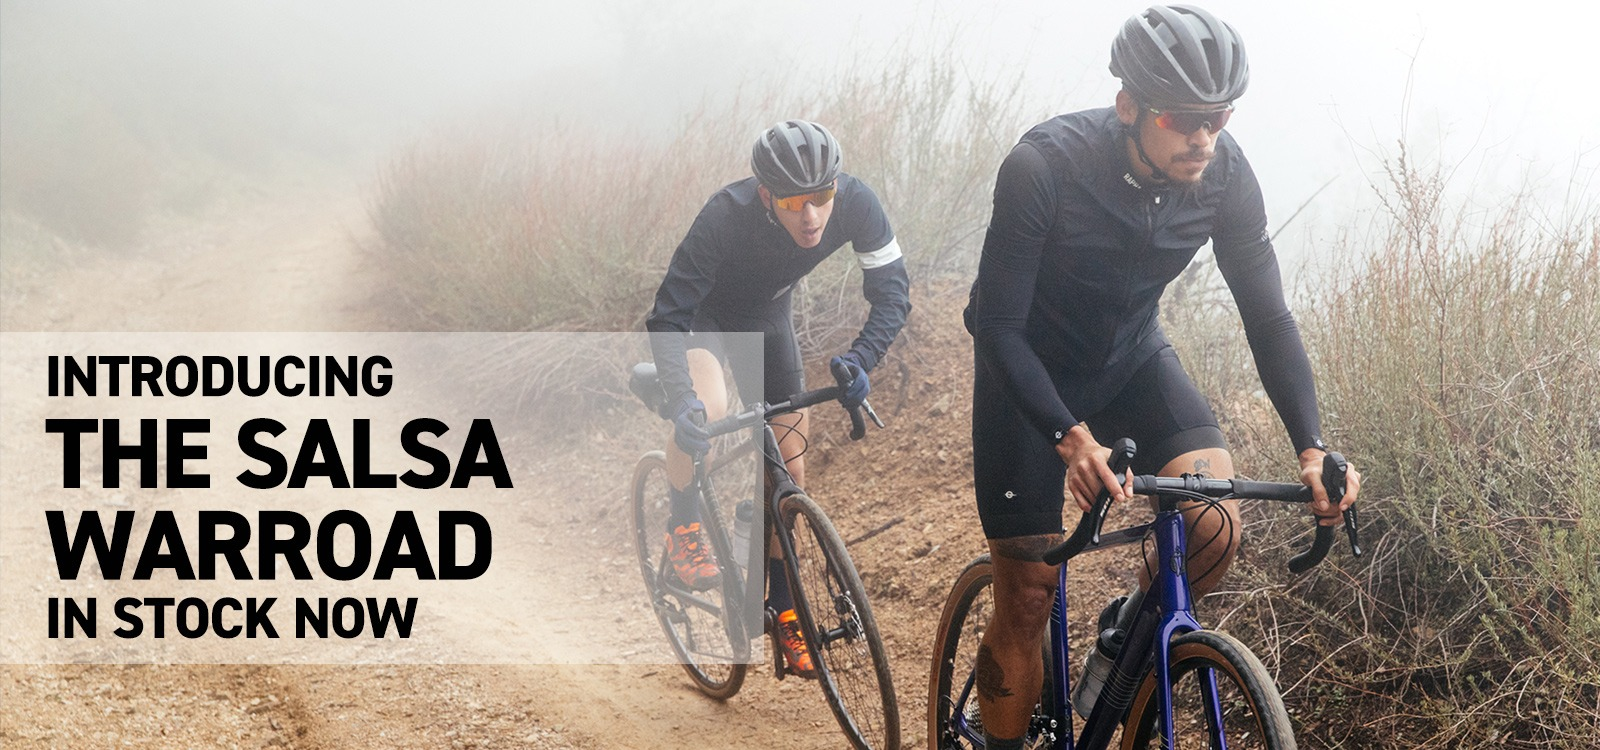 Salsa Warroad now available at Alpha Bicycle Company